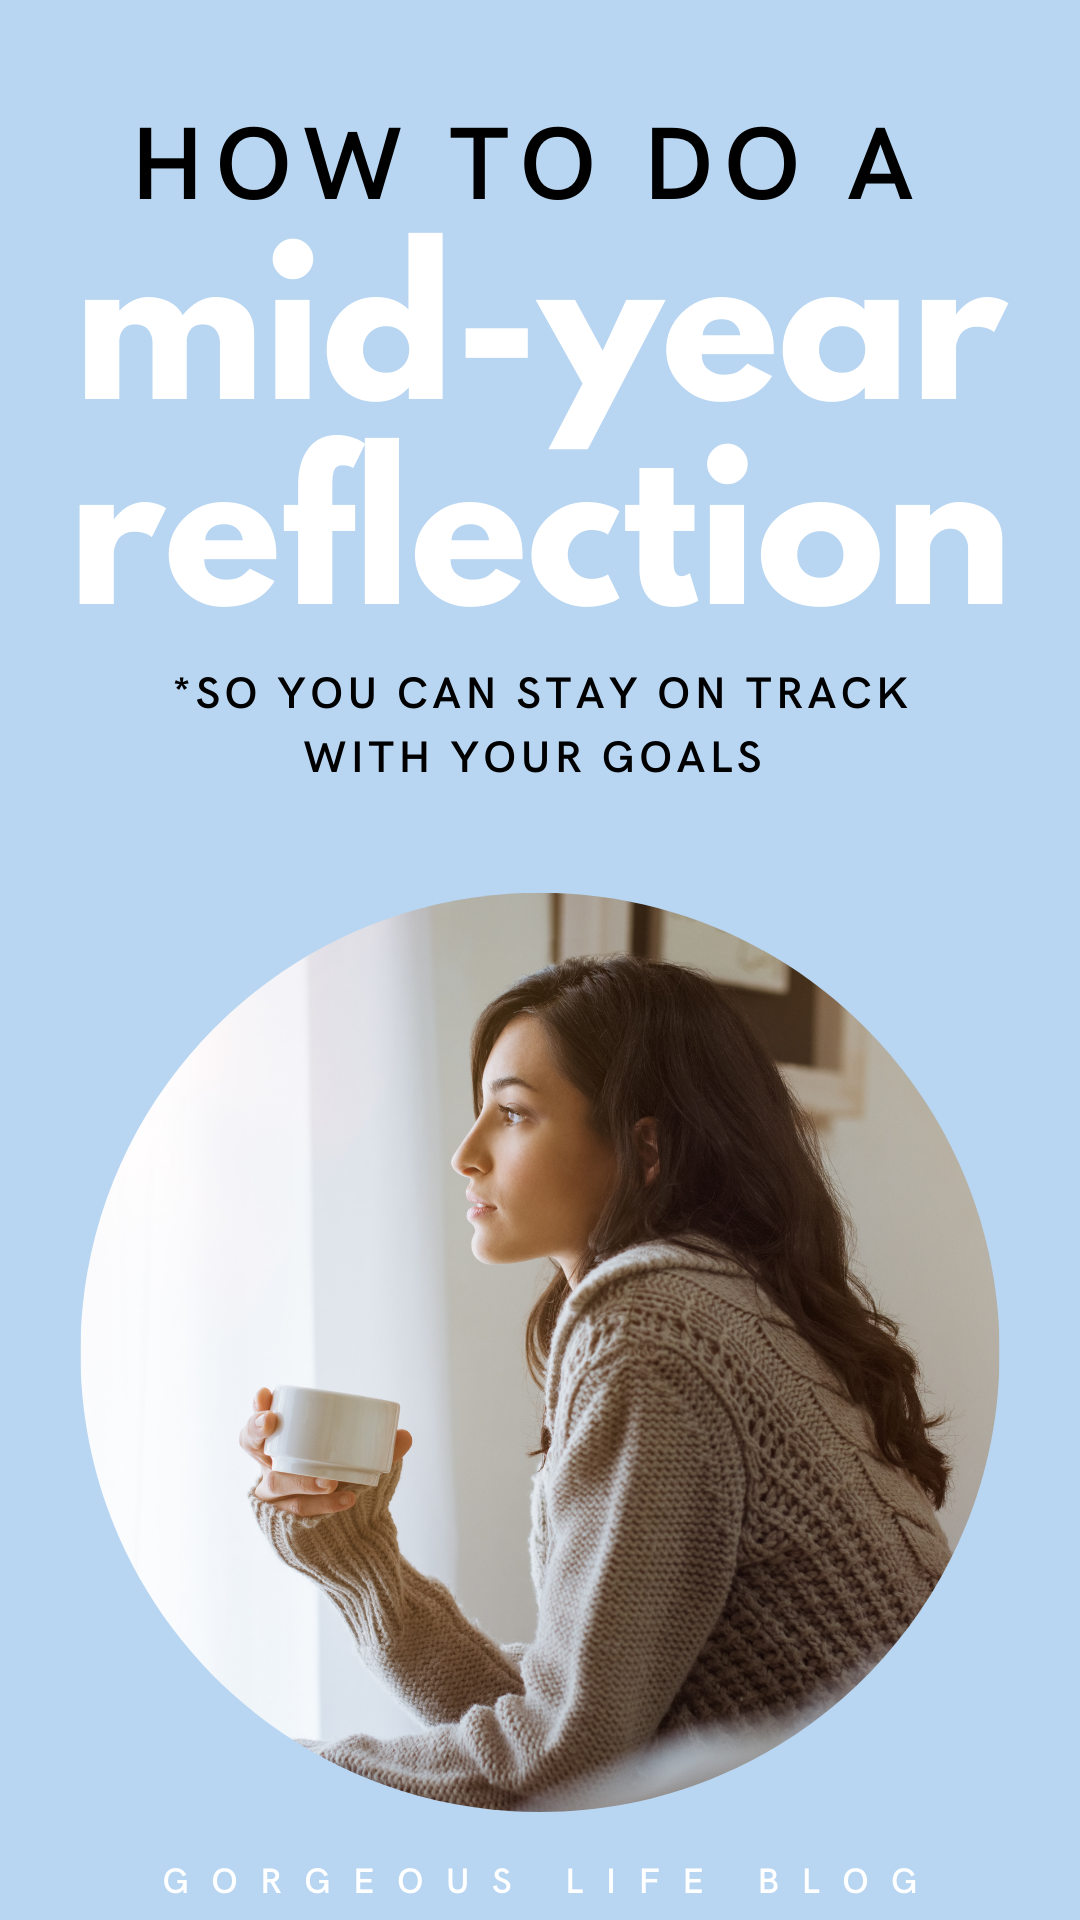 mid-year reflection